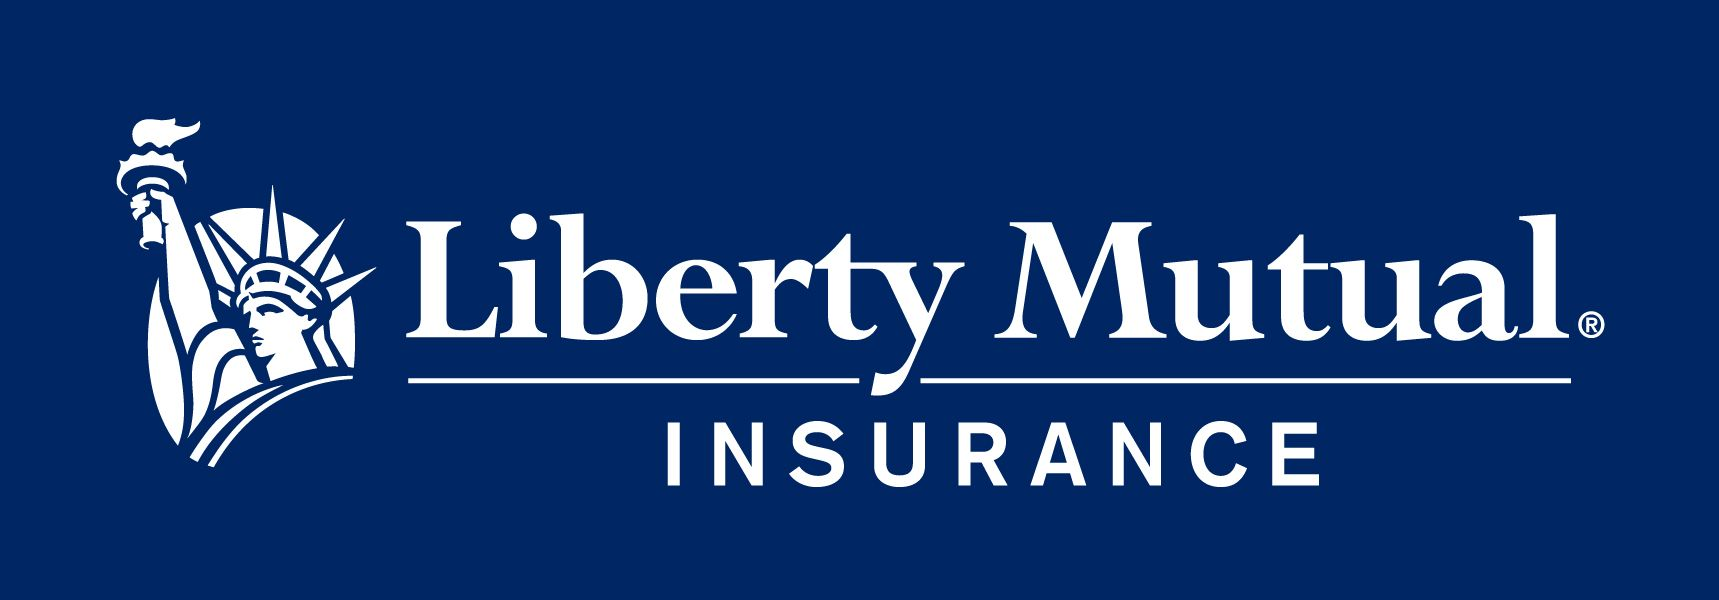 Liberty Mutual Quote Best Image Result For Liberty Mutual Insurance  Branding  Pinterest . Design Ideas